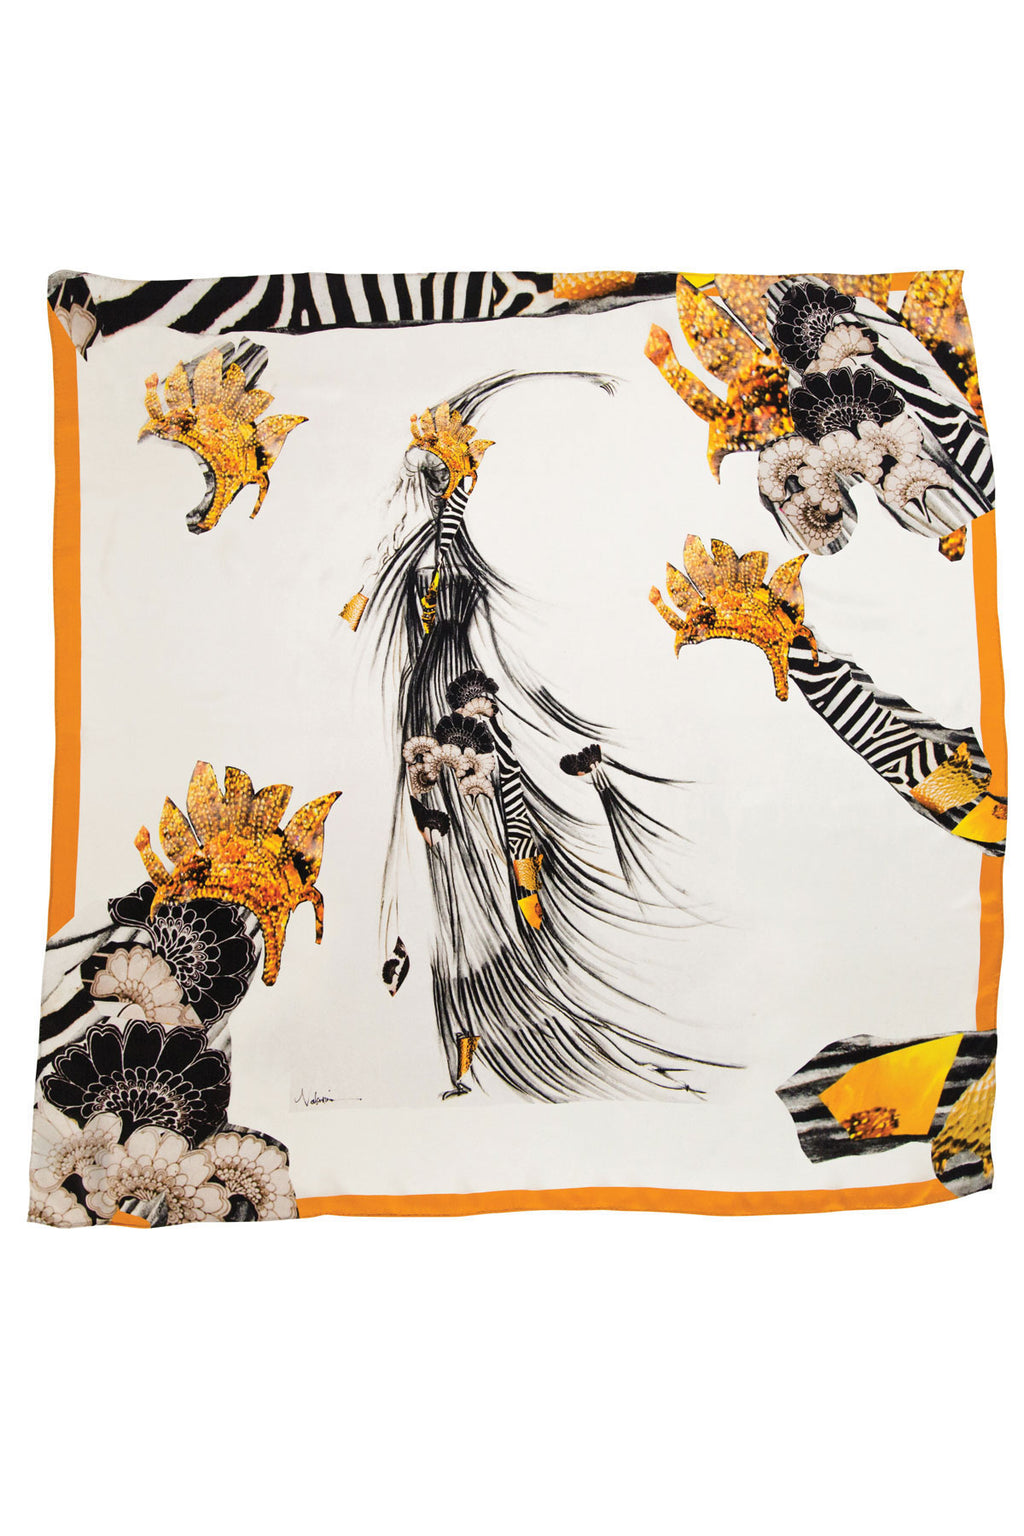 Jungle Queen Square Scarf Scarves The Fashion Advocate ethical Australian fashion designer boutique Melbourne sustainable clothes